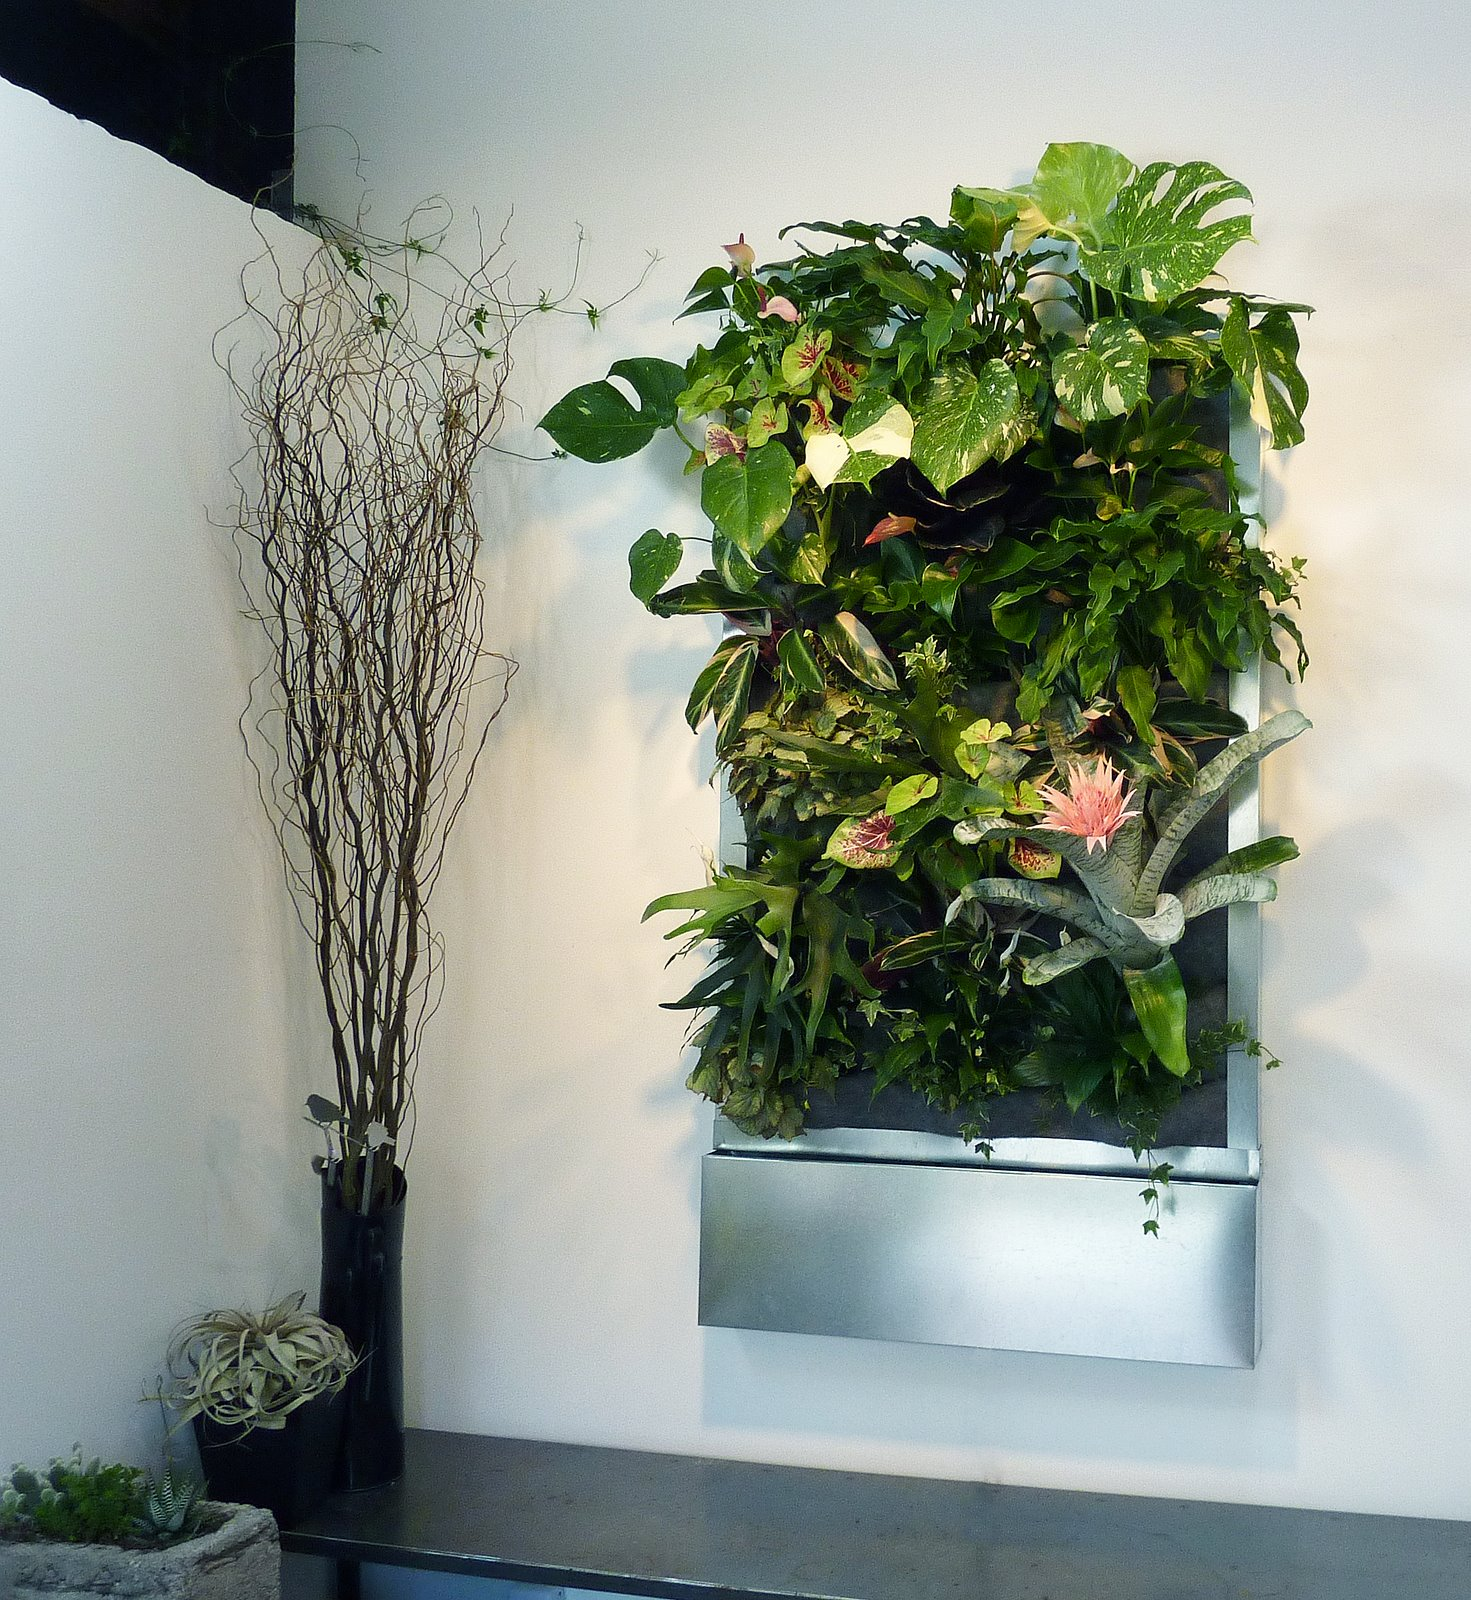 floraframe total system florafelt vertical garden systems. Black Bedroom Furniture Sets. Home Design Ideas